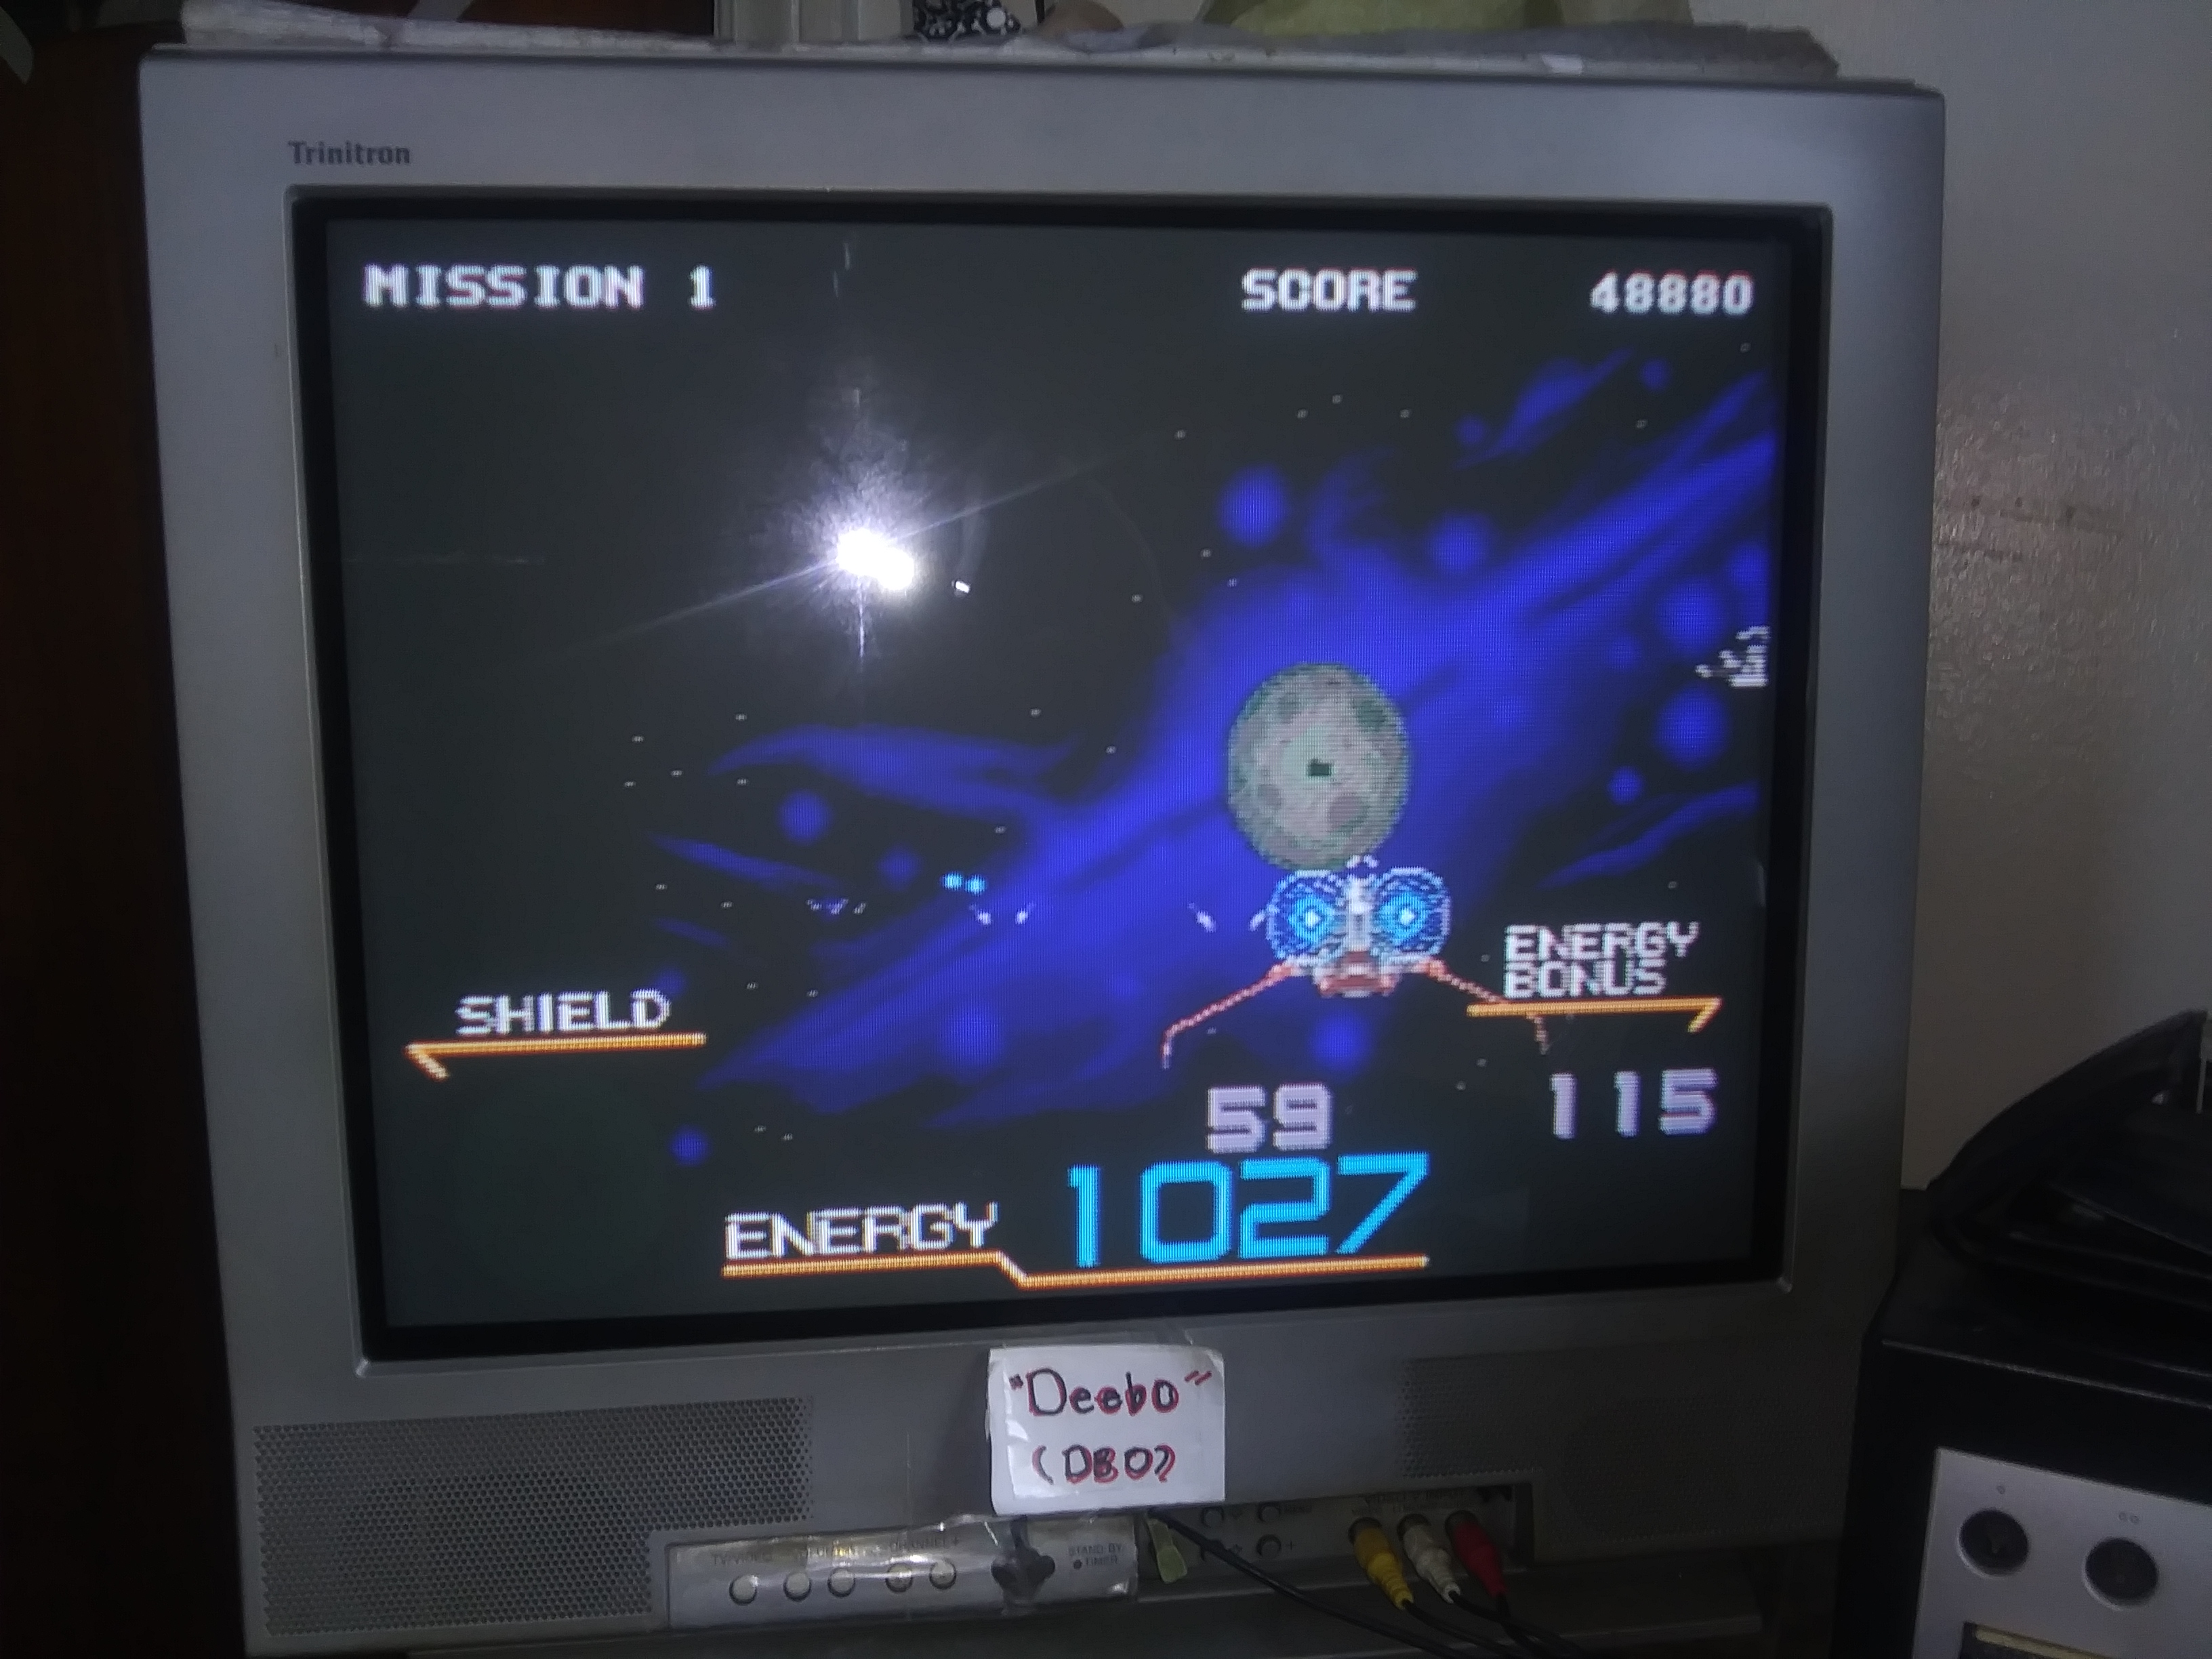 Deebo: Galaxy Force II [Hard] (Sega Genesis / MegaDrive) 48,880 points on 2019-07-17 16:45:20